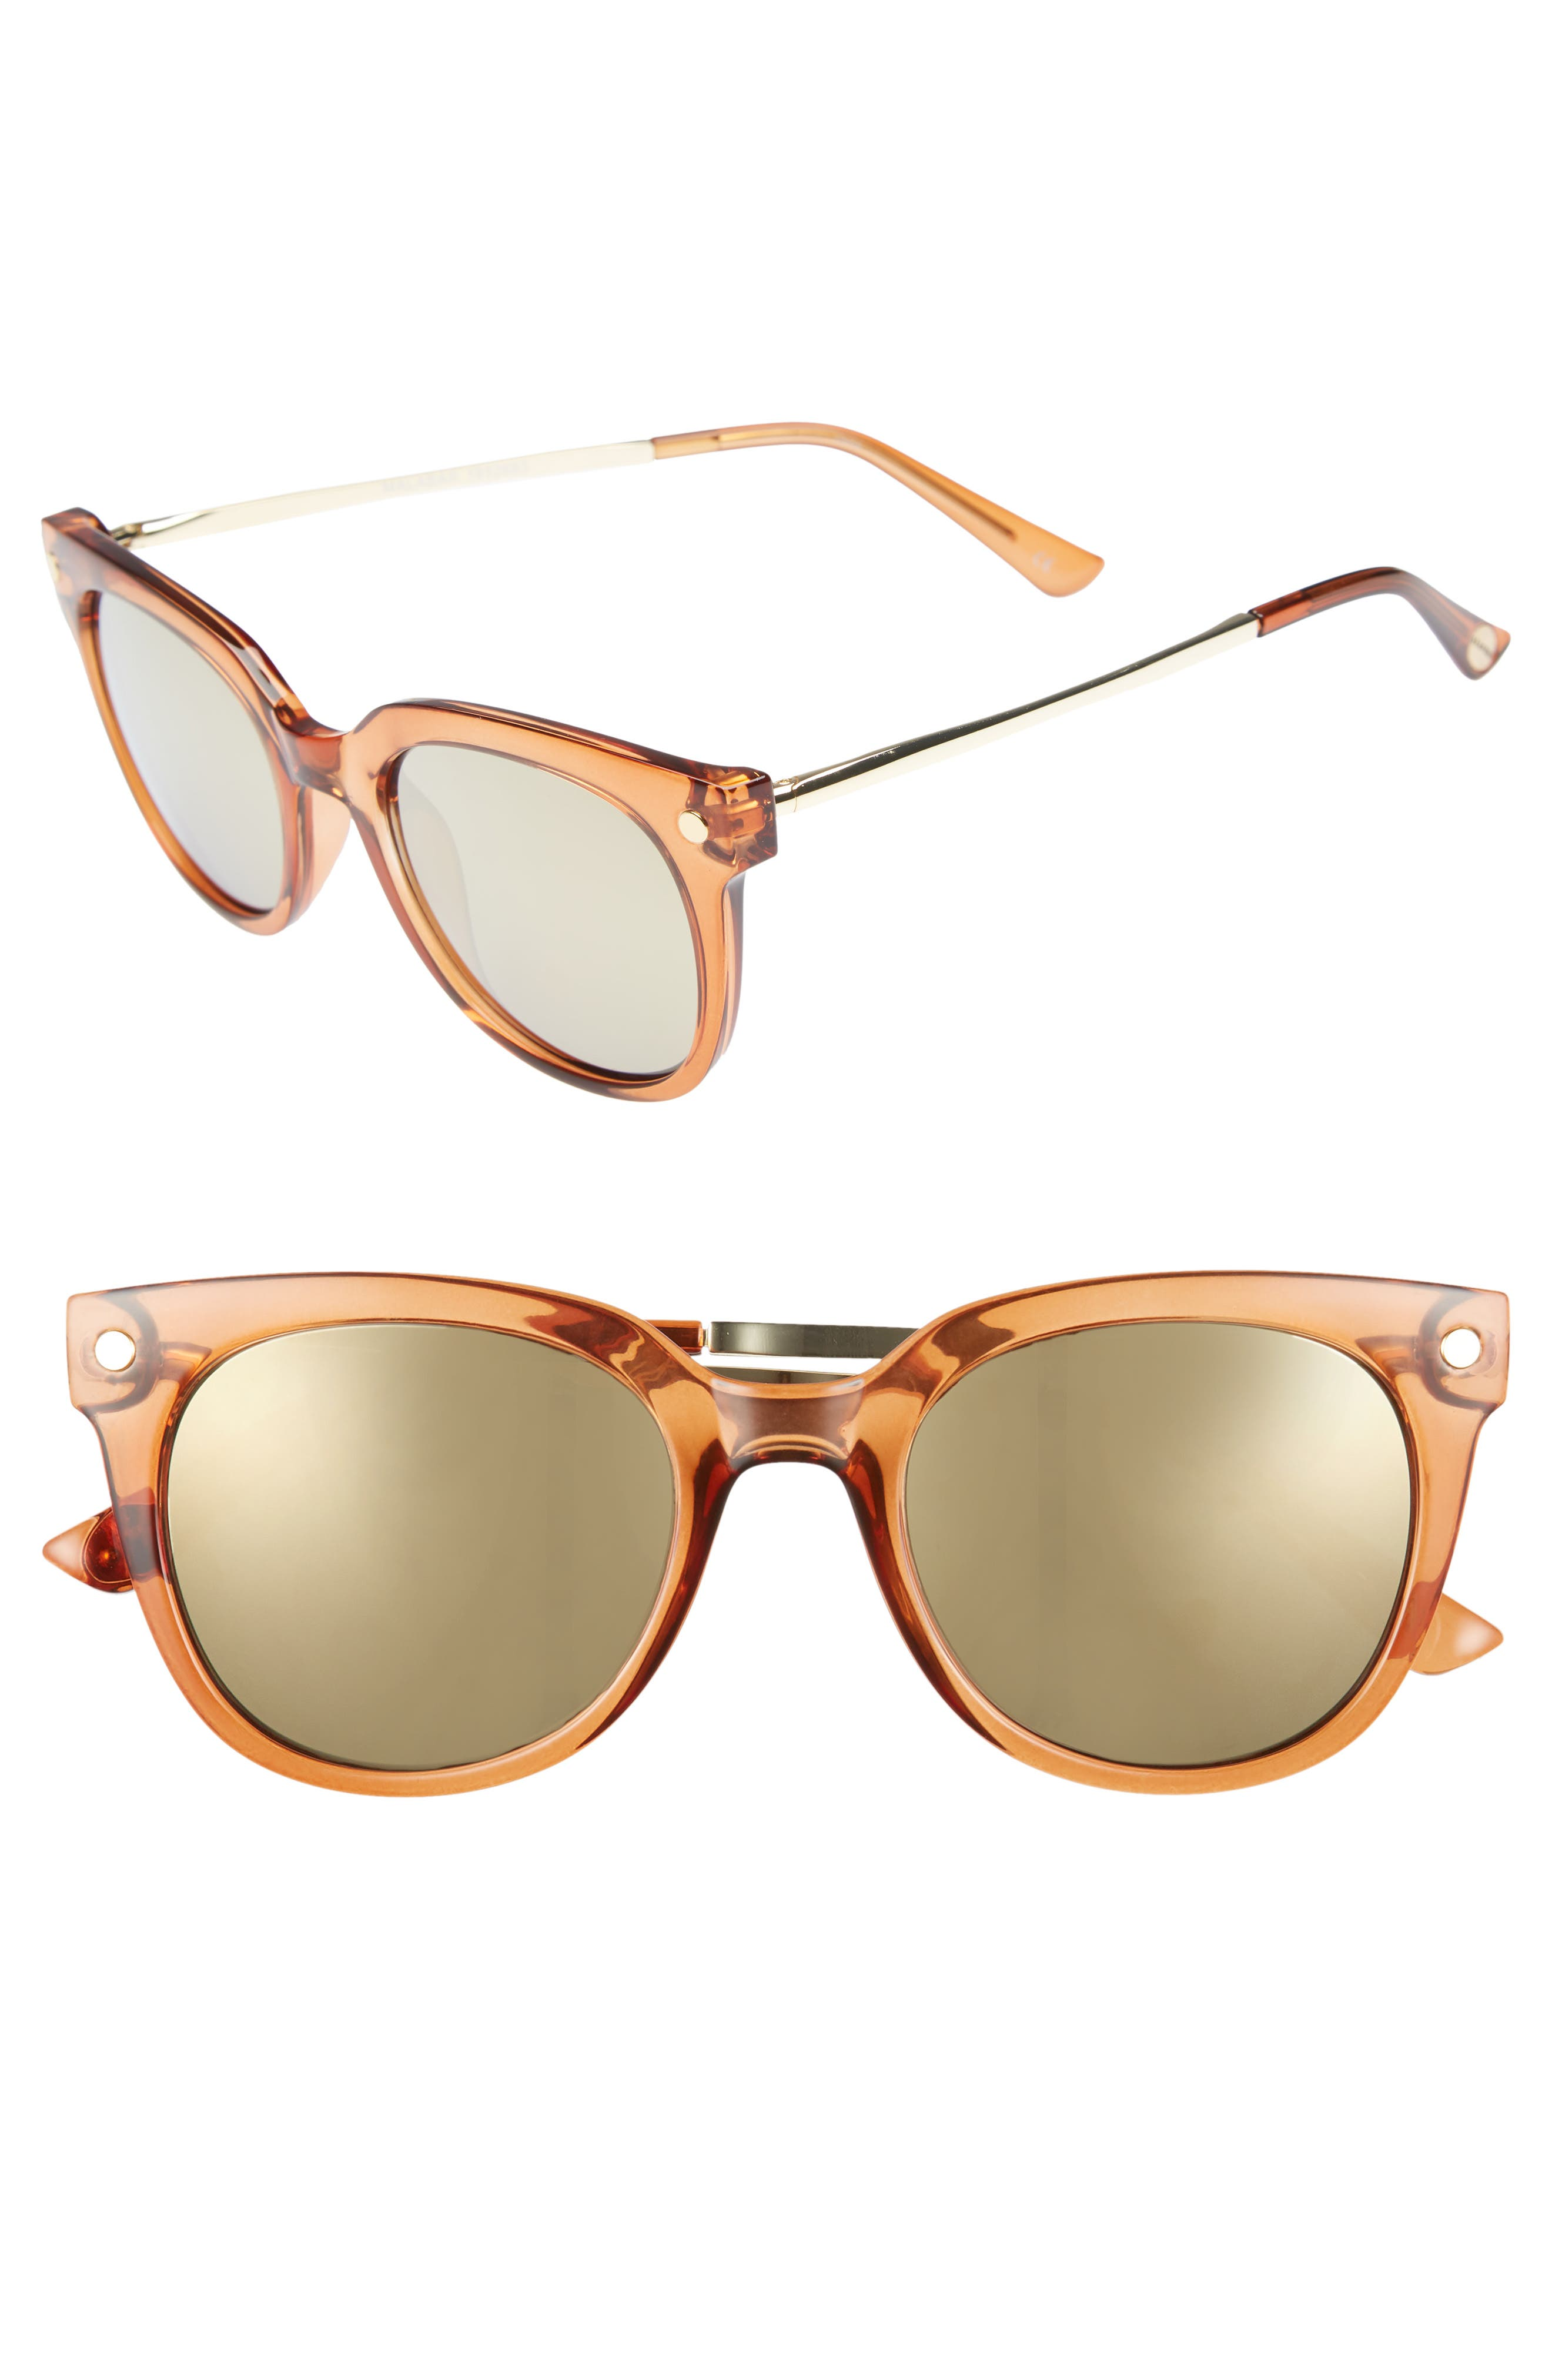 Malabar 52mm Sunglasses,                             Main thumbnail 1, color,                             Maple